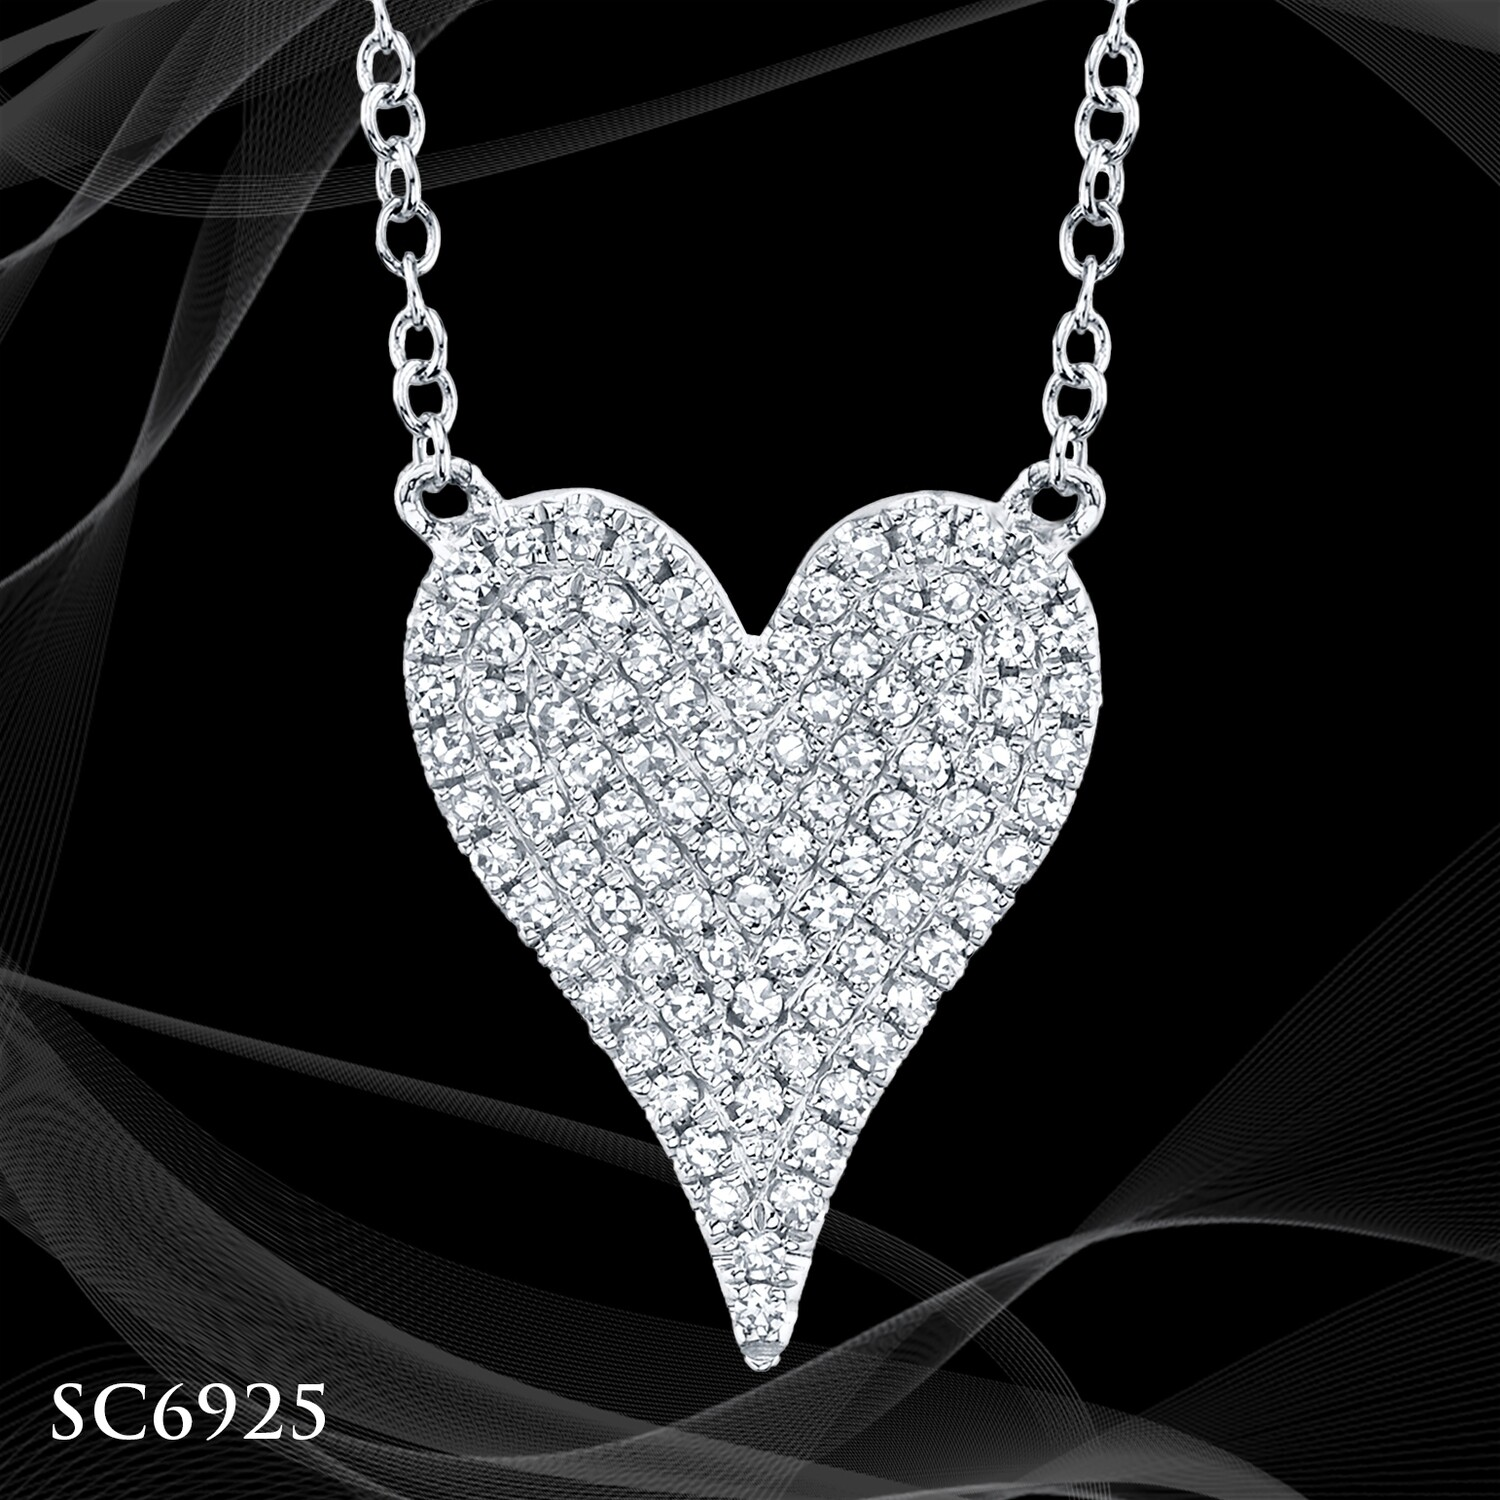 14 Karat White Gold Diamond Pave Heart Necklace